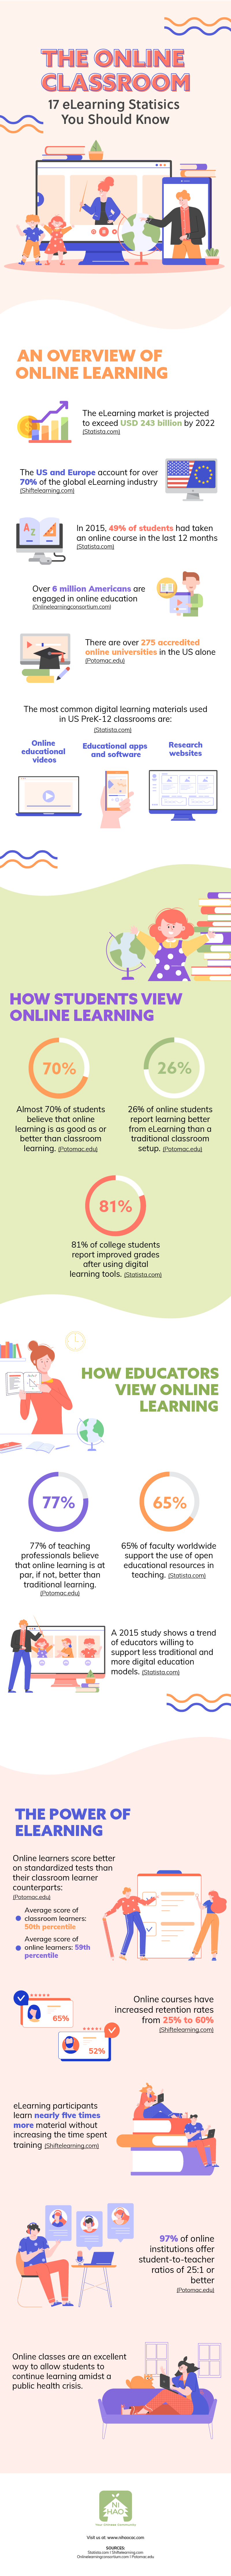 The Online Classroom: 17 eLearning Statistics You Should Know